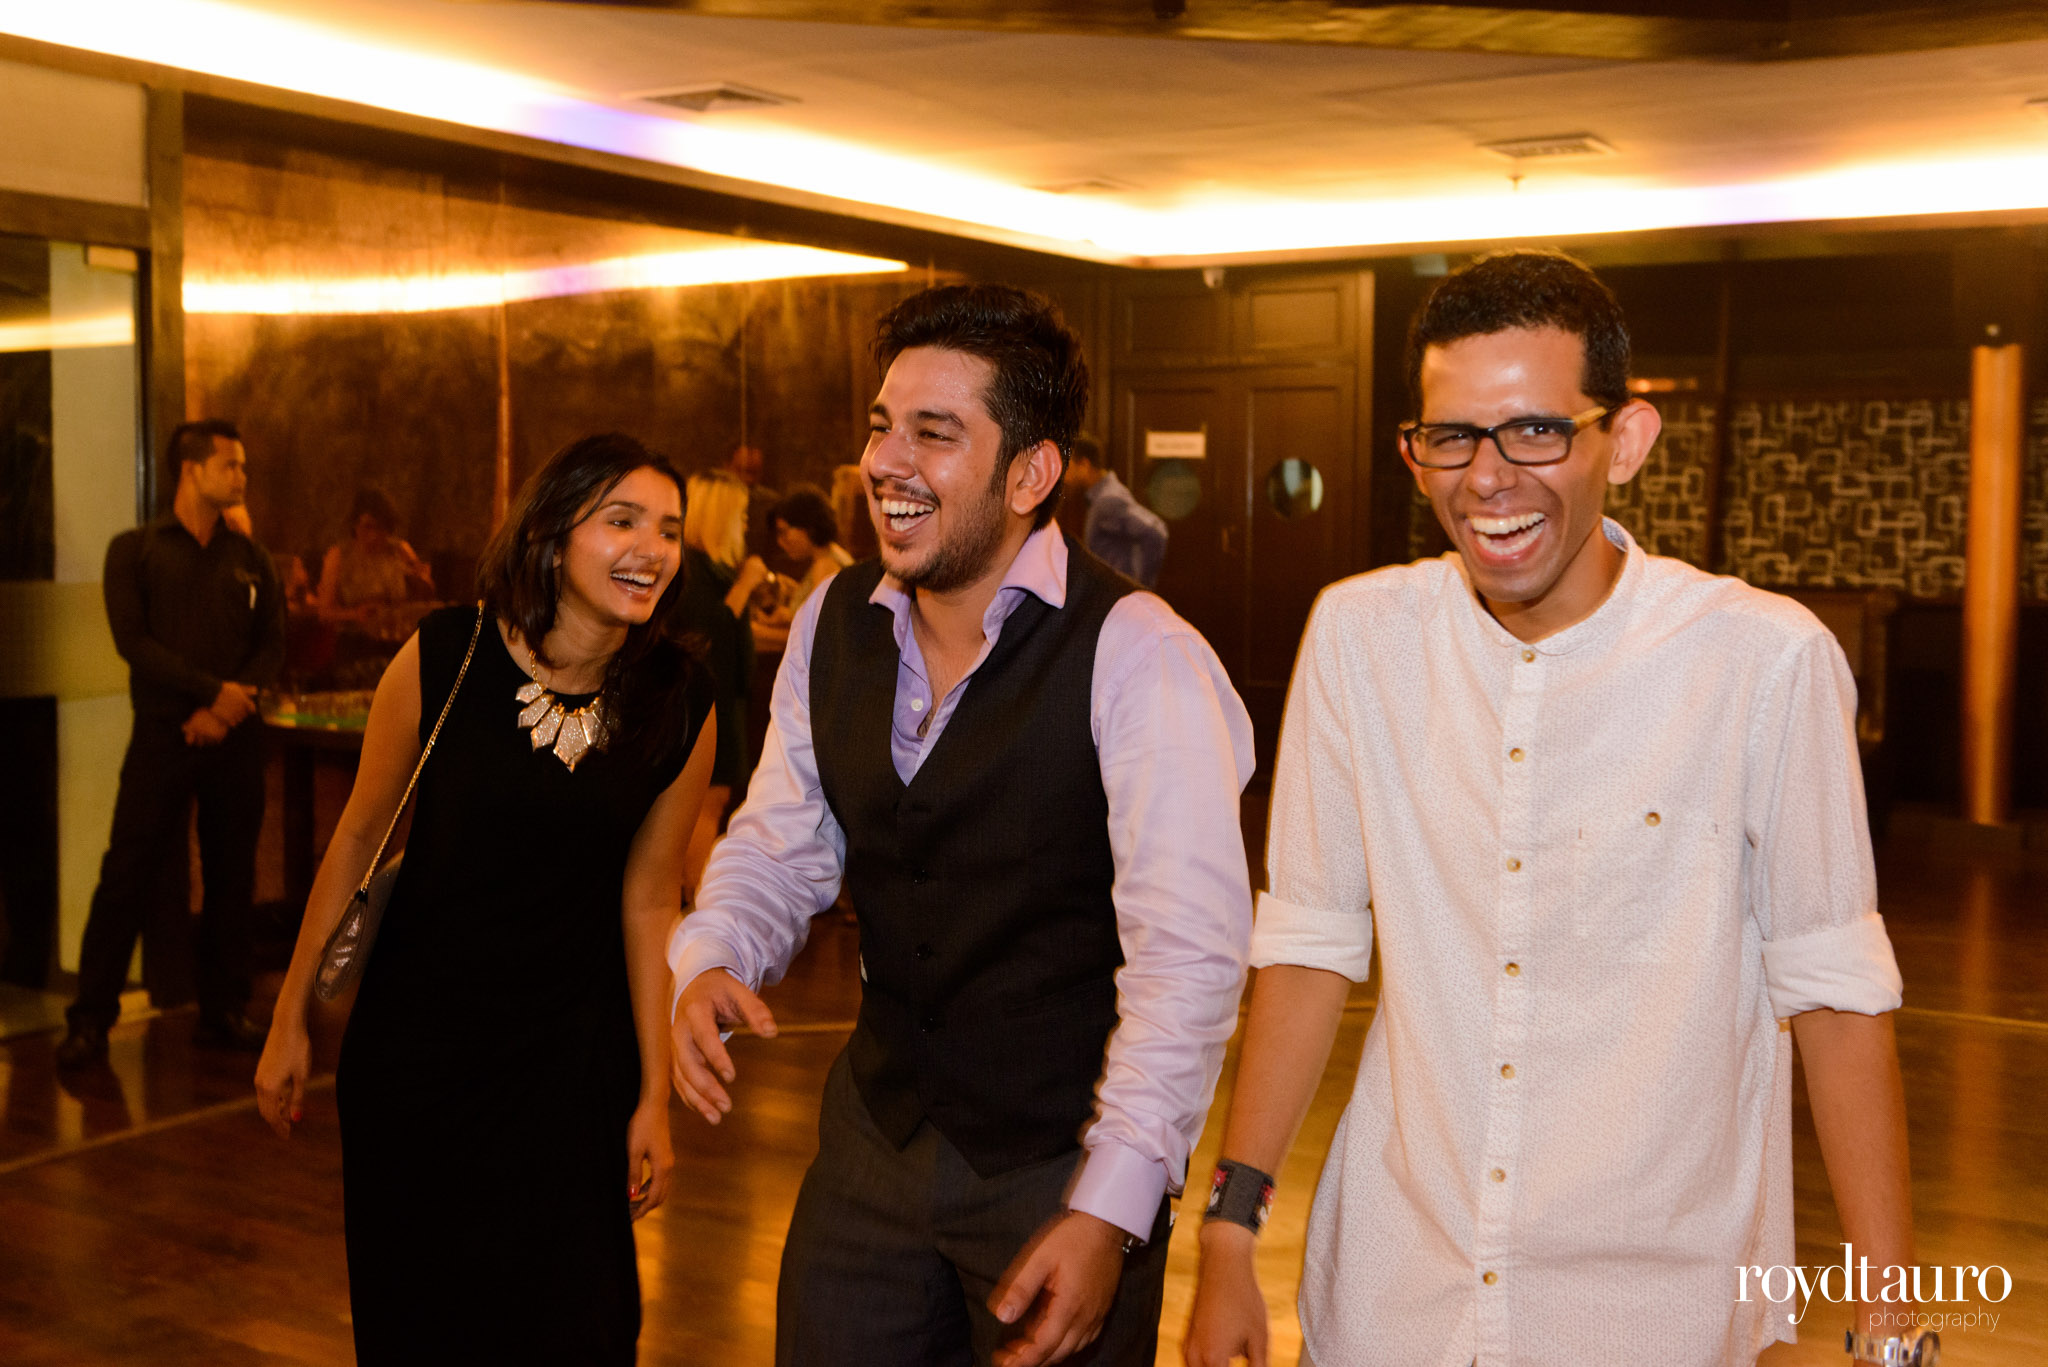 nikhil-madhura-cocktail-party-105.jpg